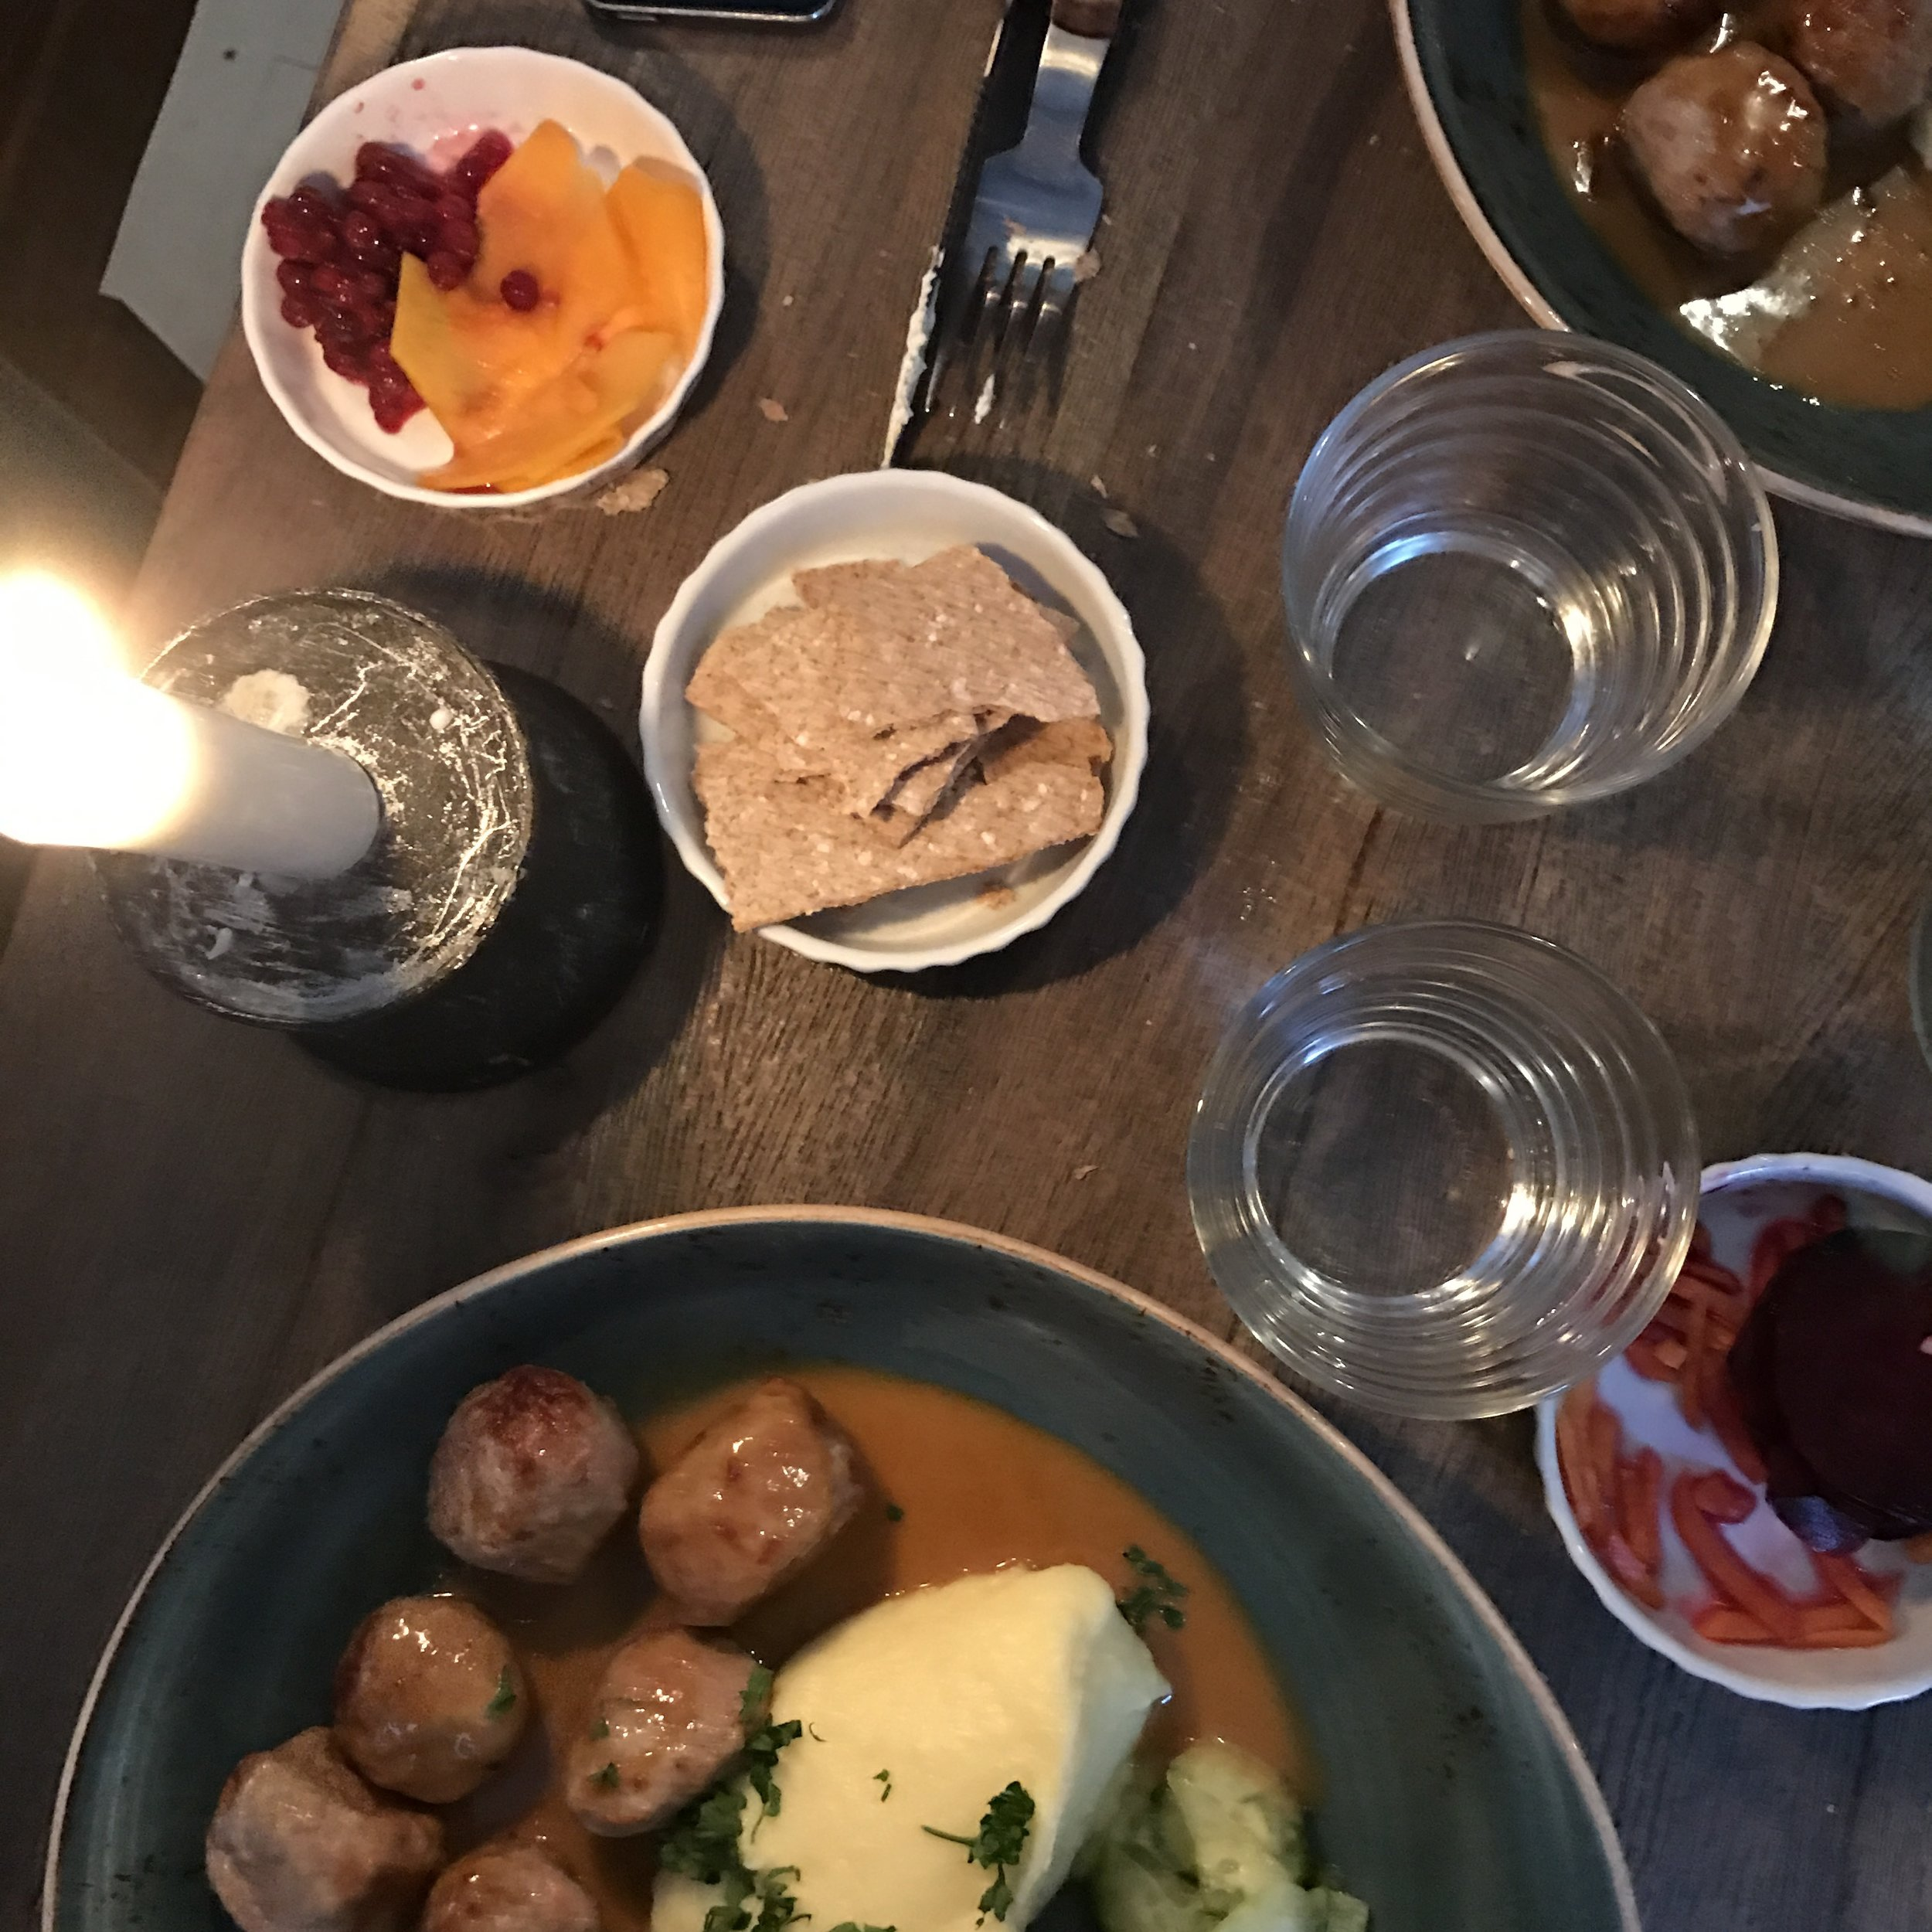 Classic Swedish Meatballs at Meatball for the People